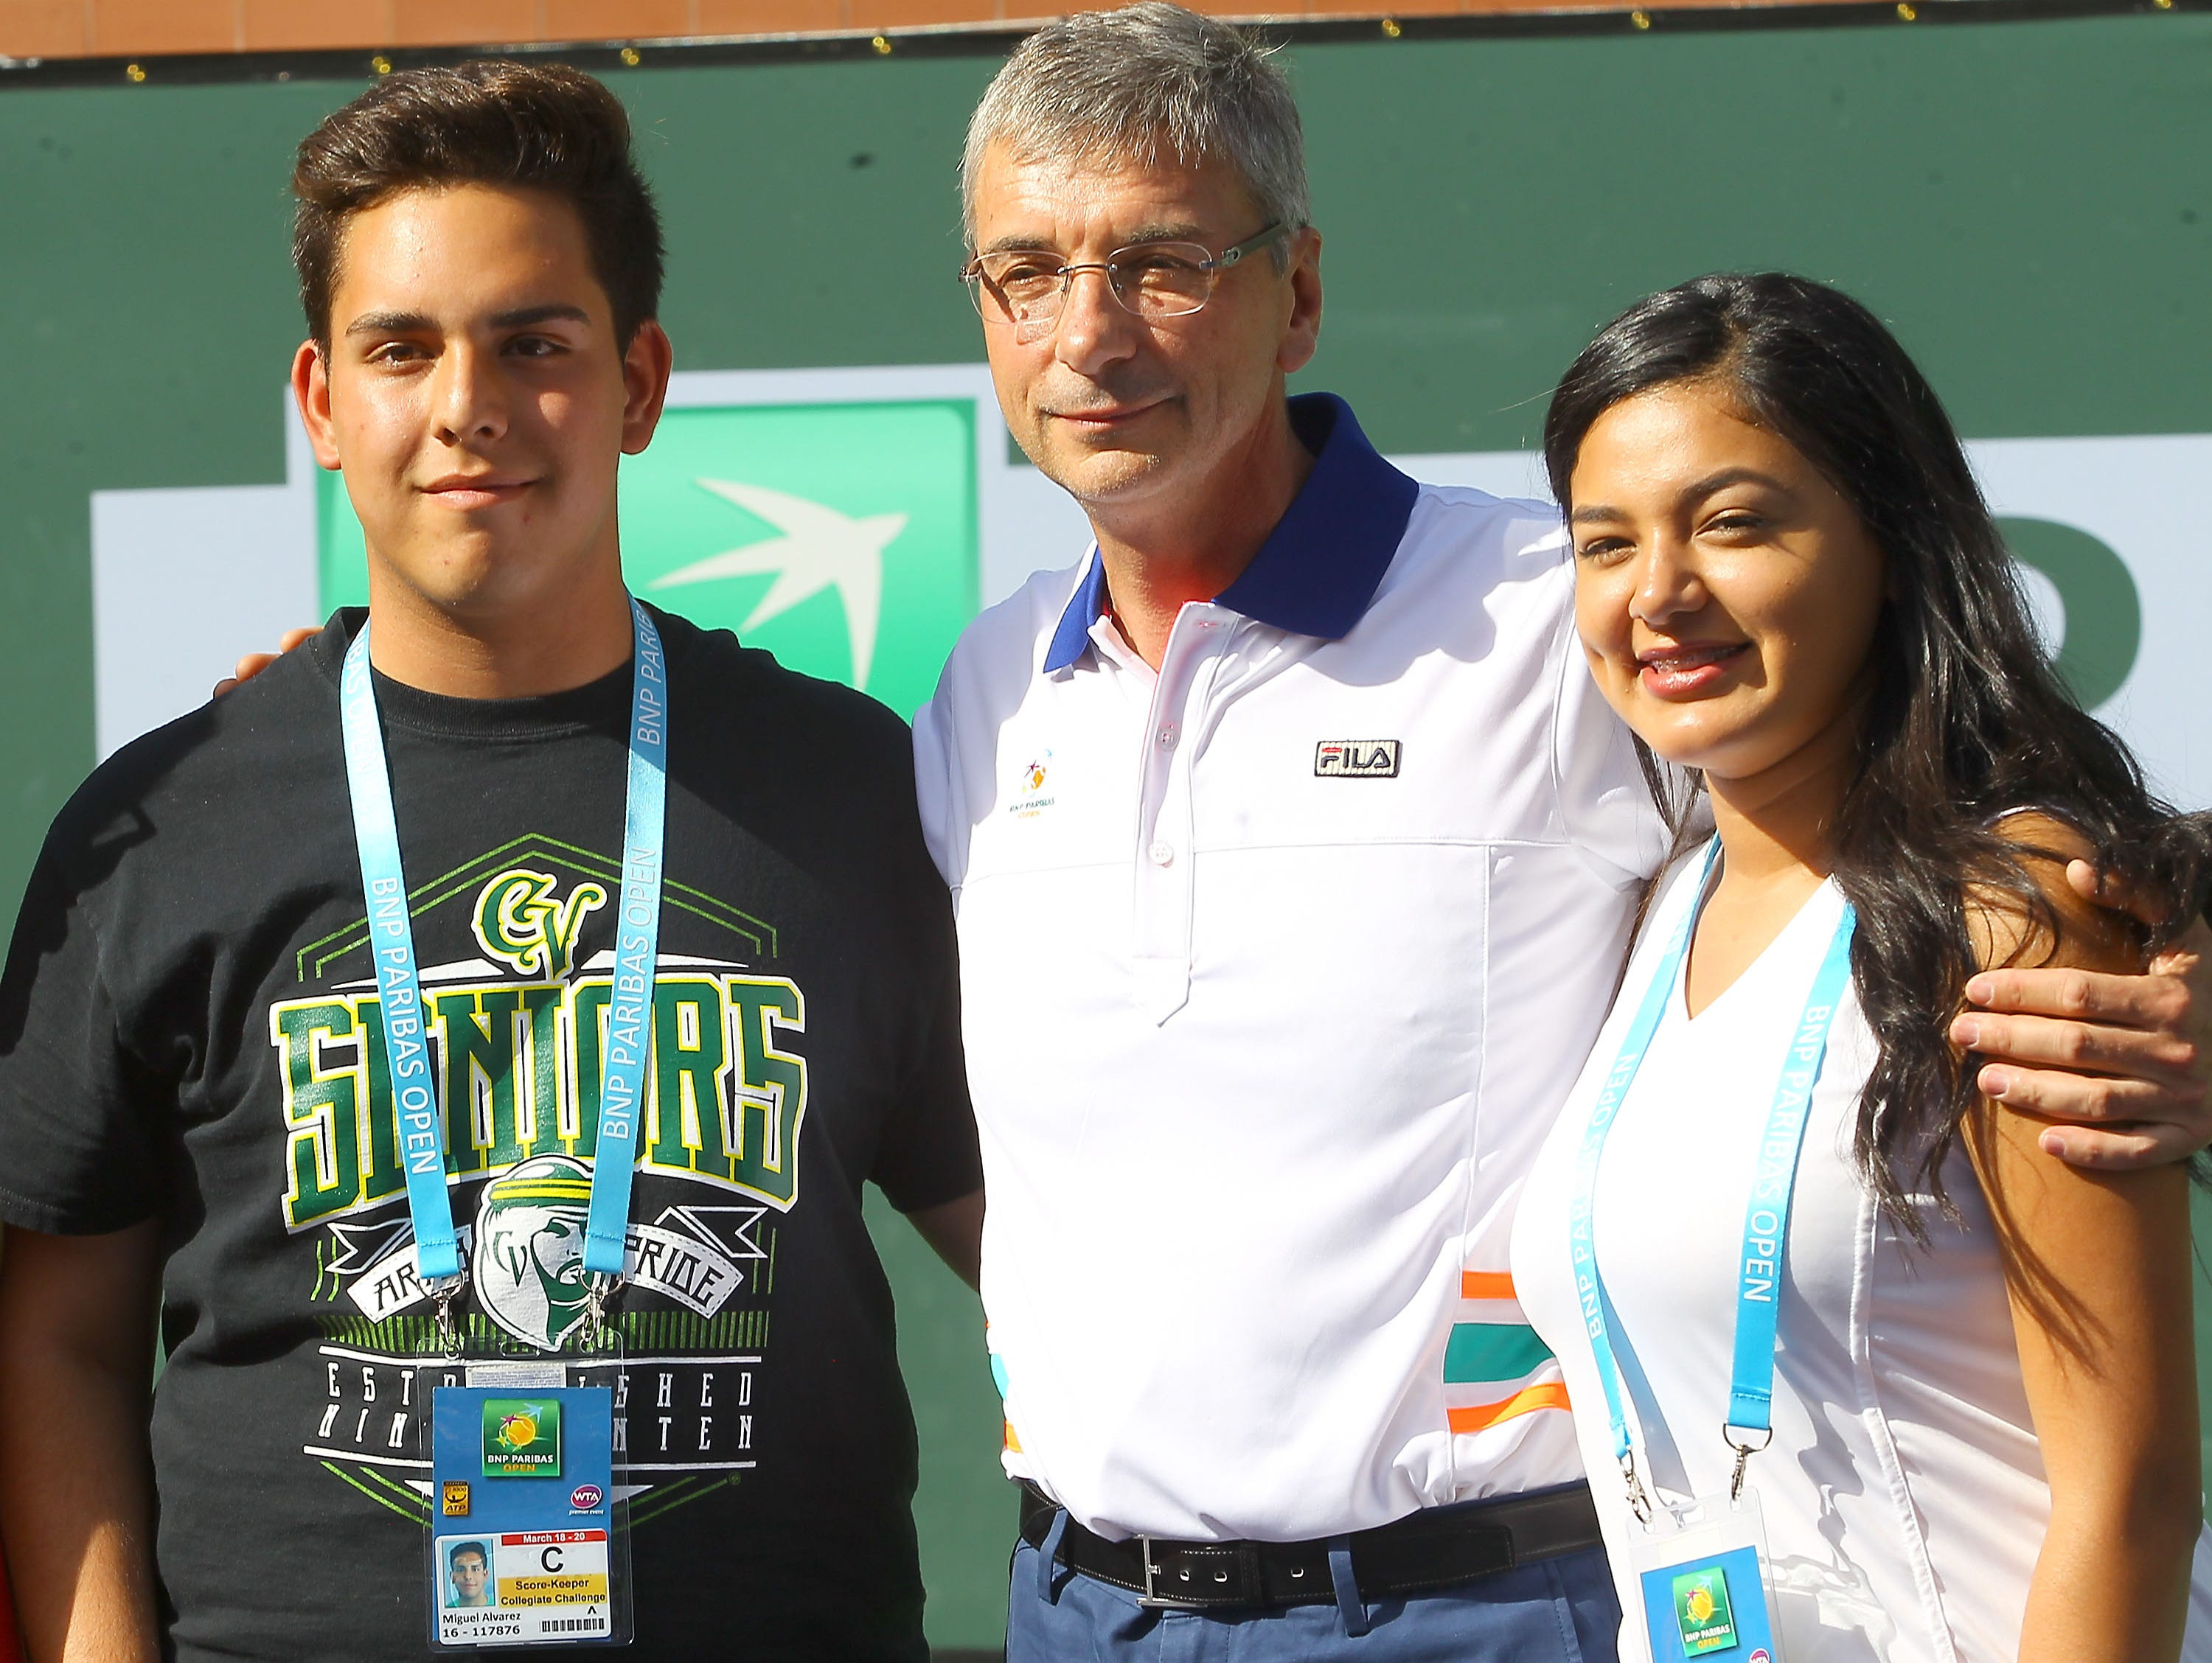 Scholarship recipients and Coachella Valley High School students Miguel Alvarez and Brianda Beltran pose for a photo with Jean Laurent-Bonnafe at the BNP Paribas Open in Indian Wells, March 19, 2016.